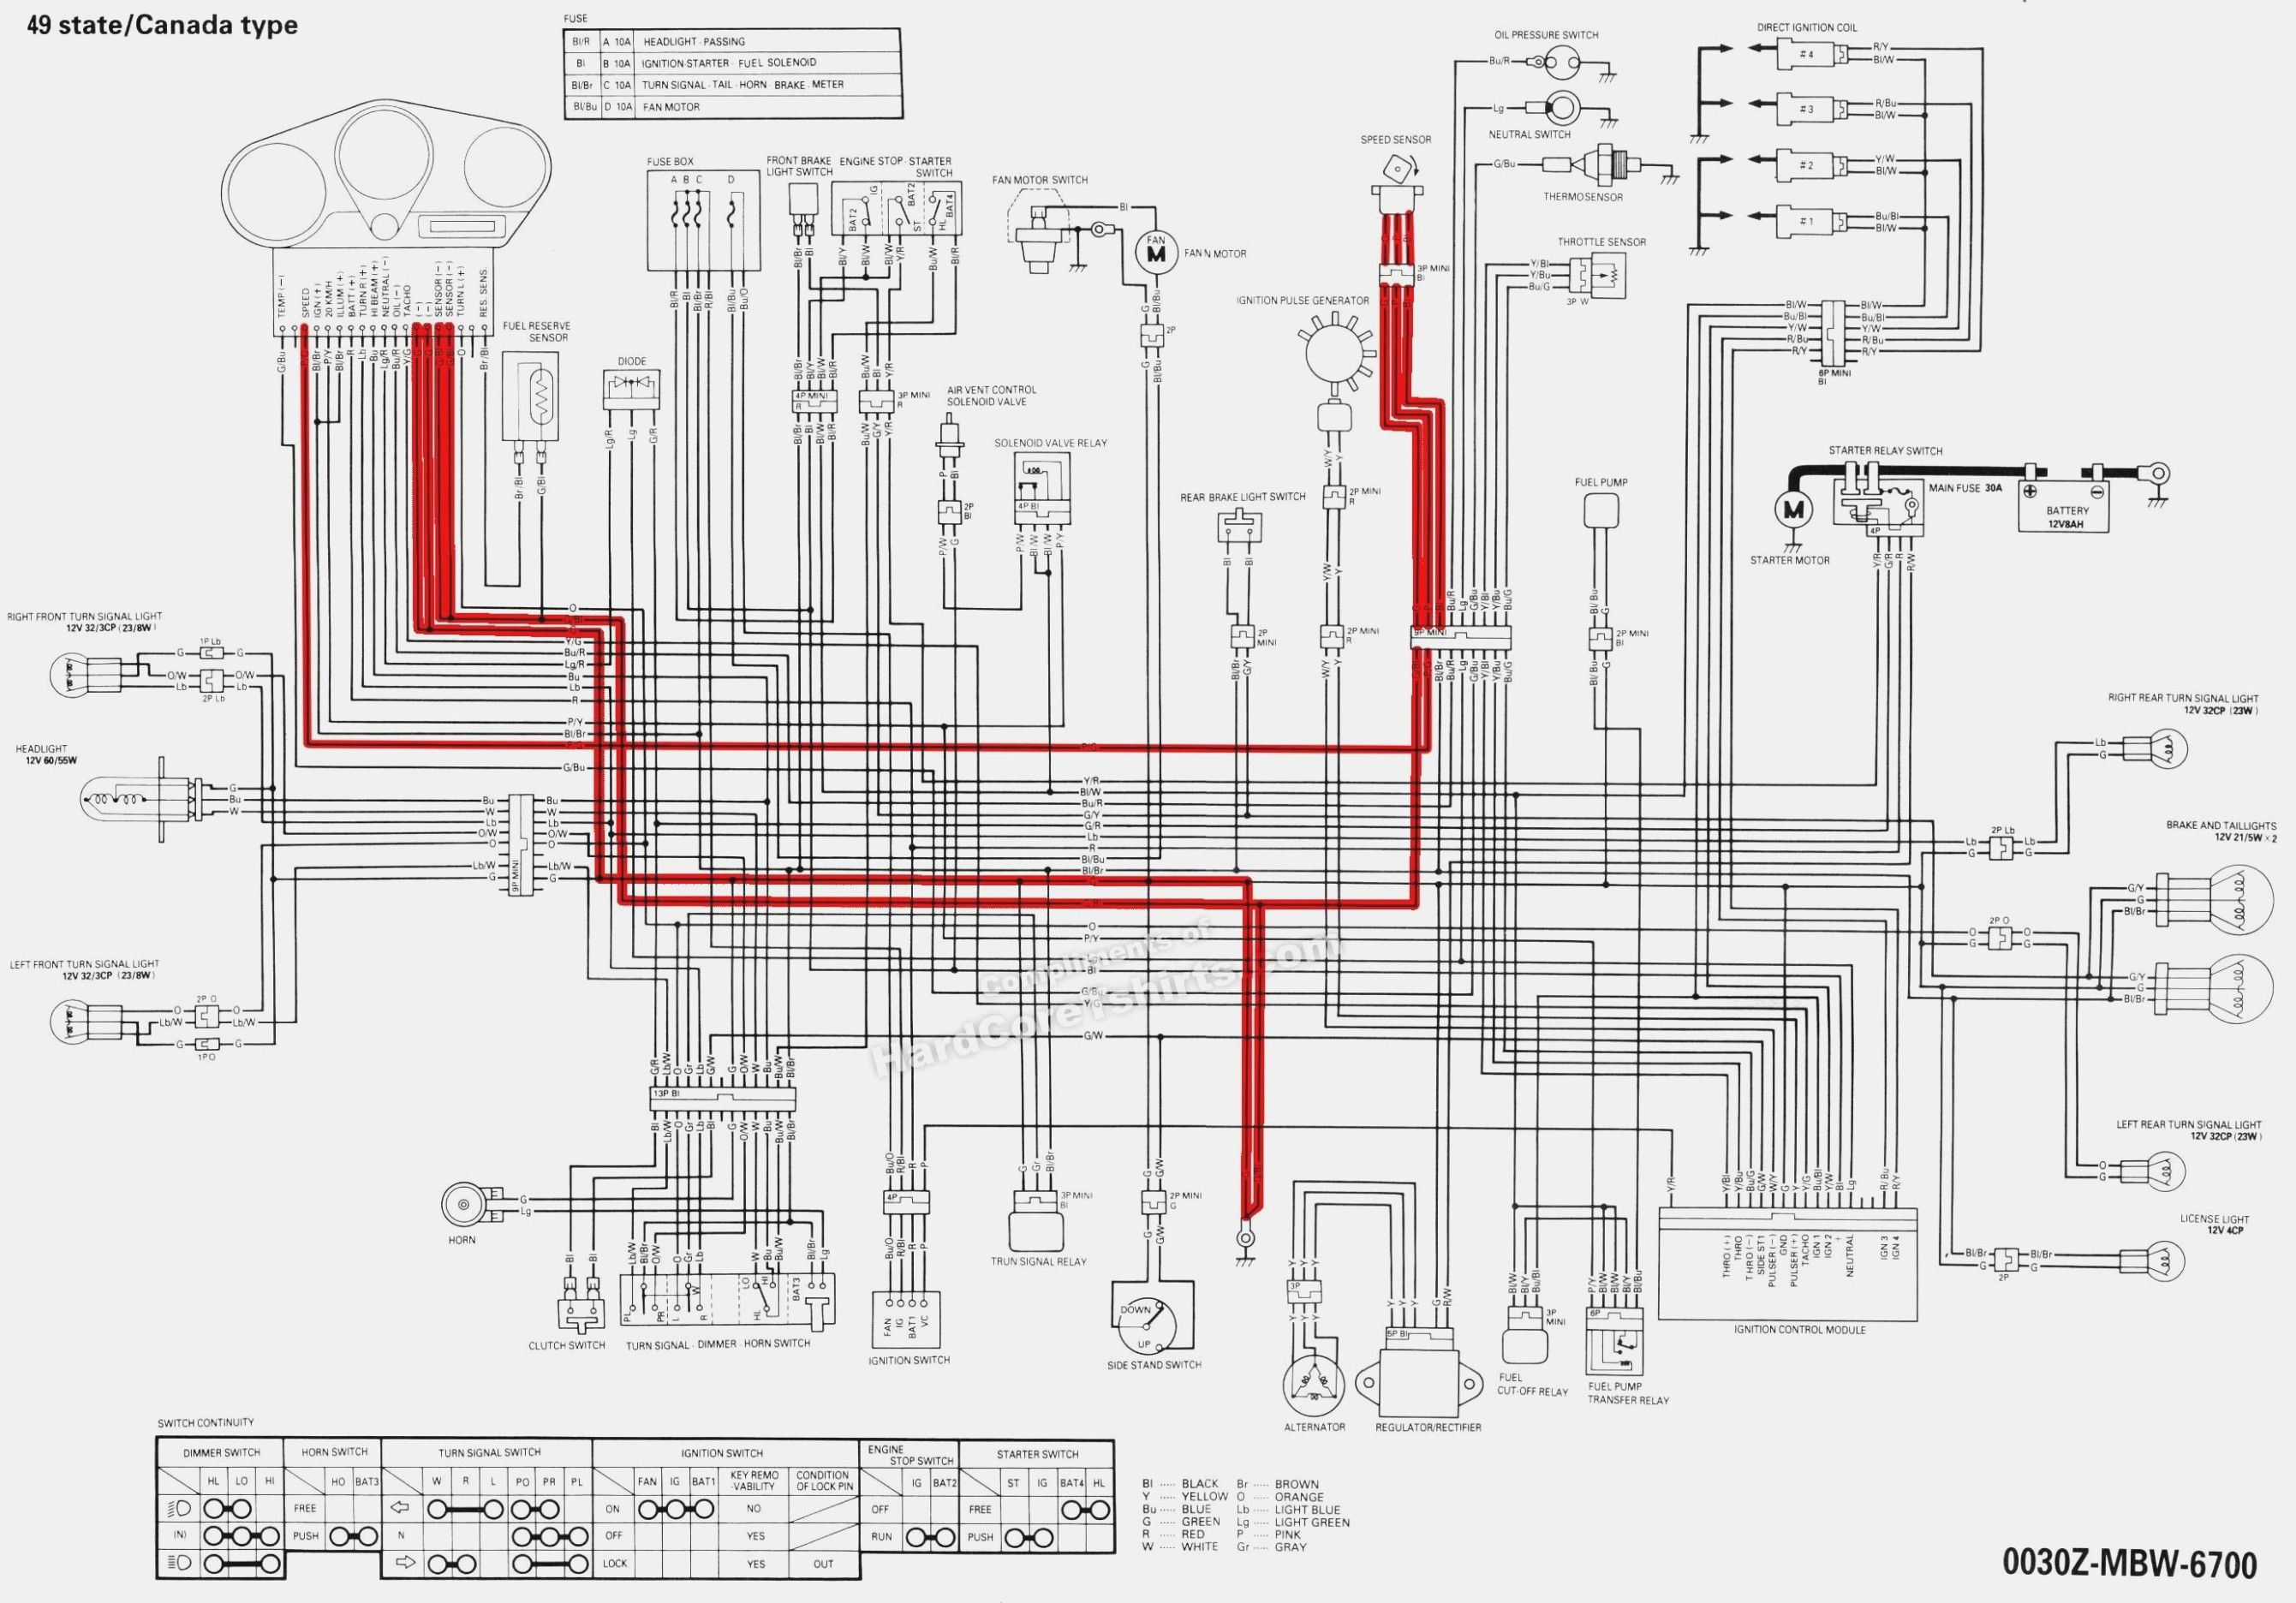 Best Of Wiring Diagram Zx7r Troubleshooting #diagrams #